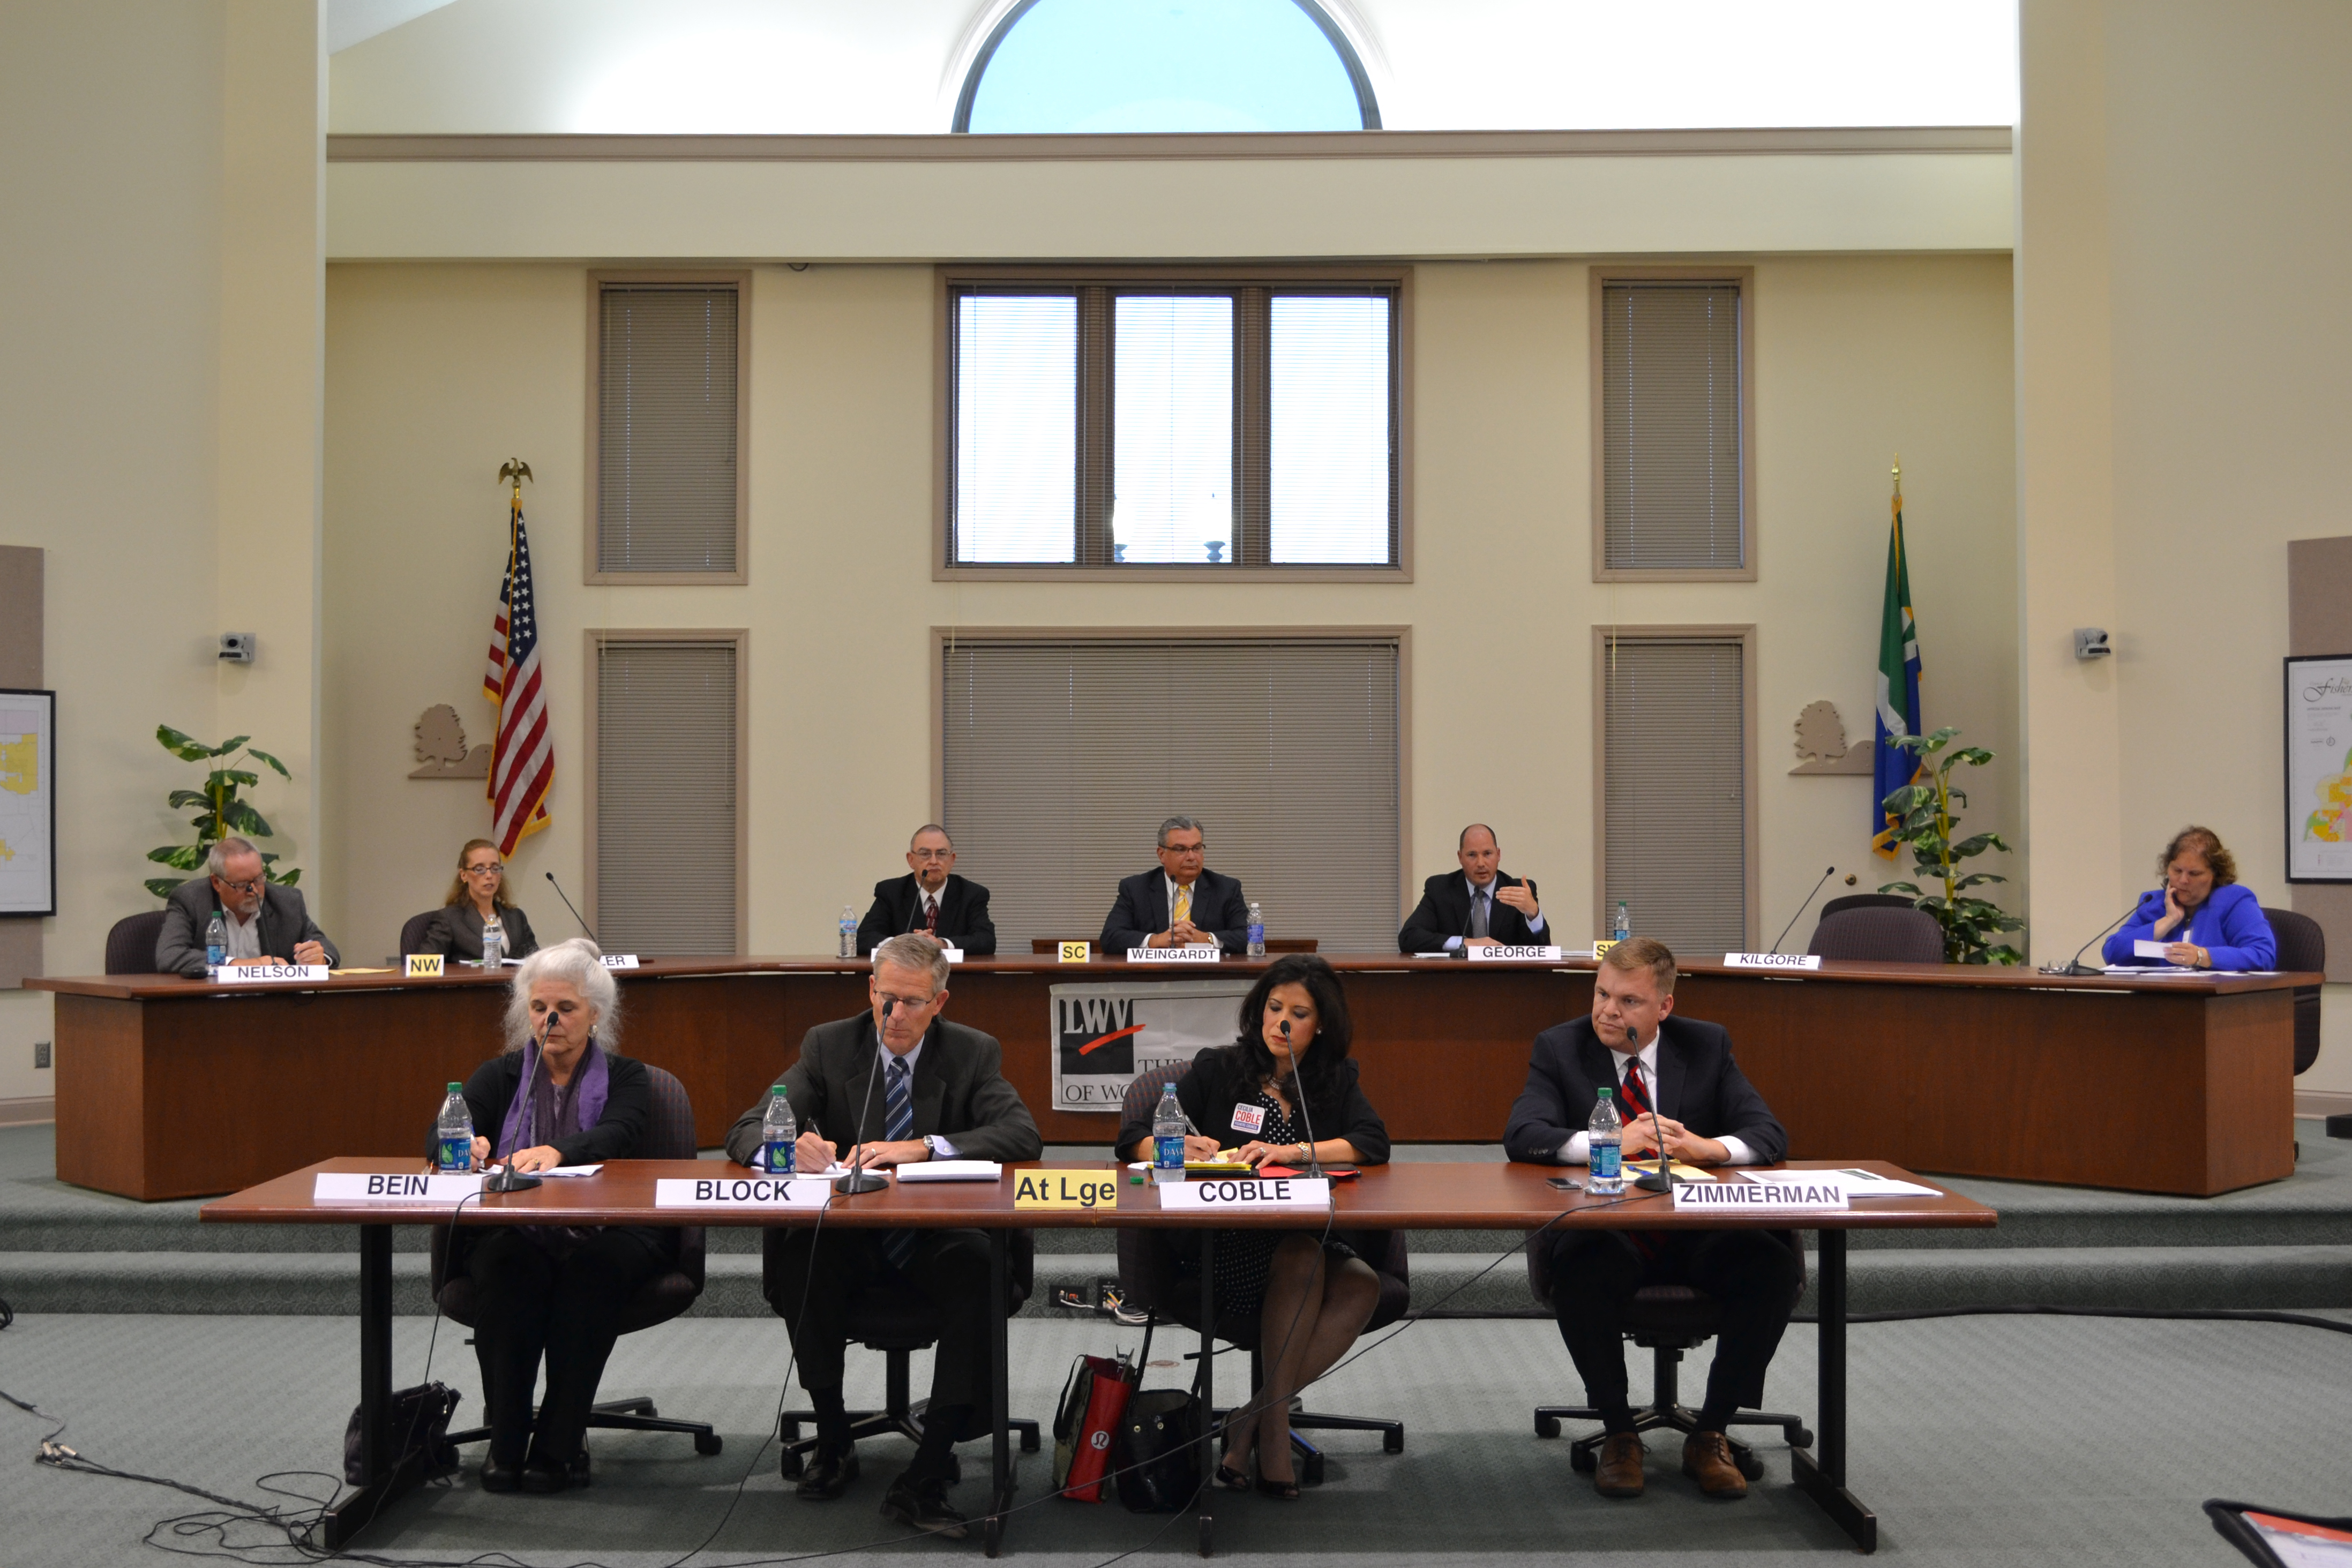 The candidates for Fishers City Council in contested races took part in a forum Oct. 8 sponsored by the League of Women Voters. (Photo by Ann Craig-Cinnamon)